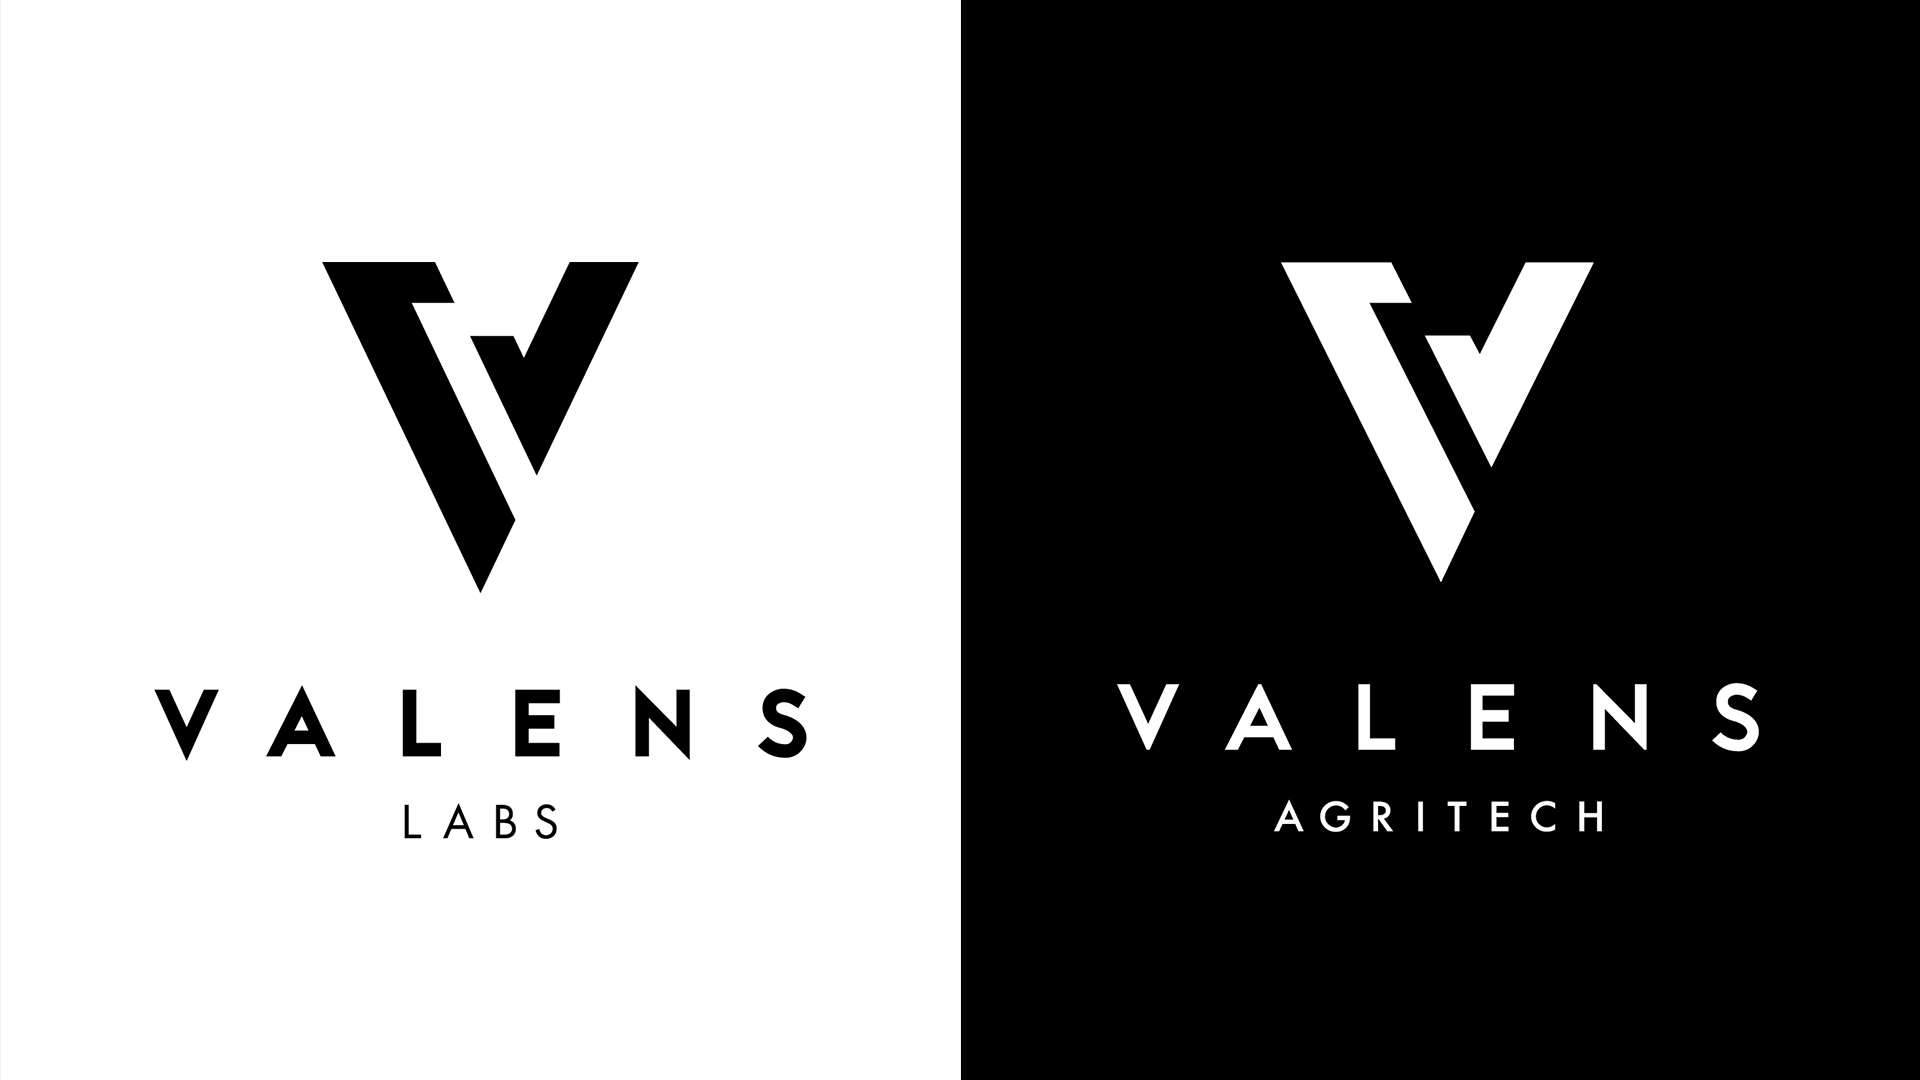 The Valens Company Logos